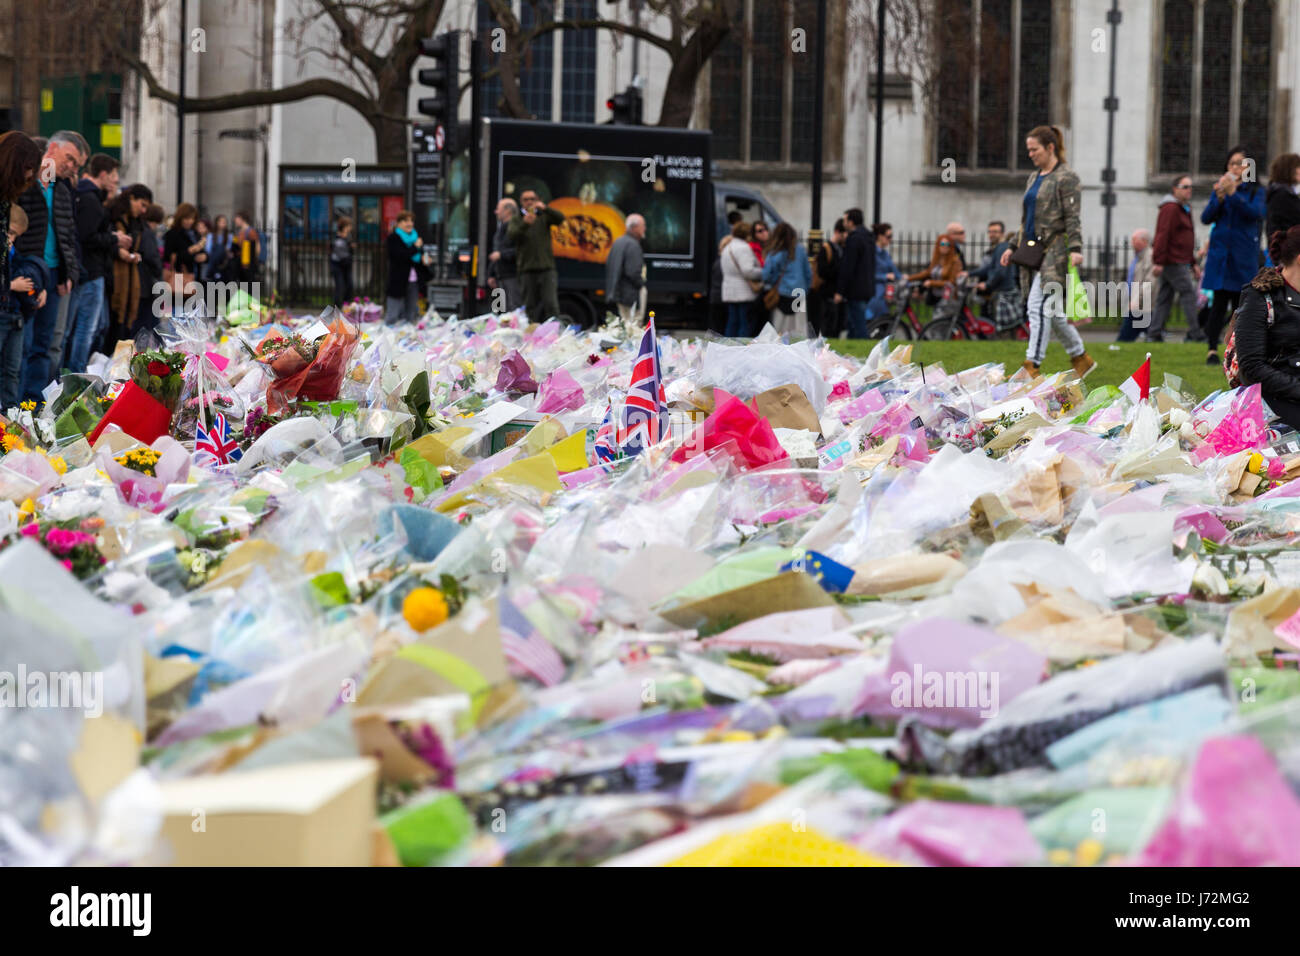 London, UK - 1st April, 2017: Parliament Square has been covered with flowers for those killed in terrorist attack, - Stock Image